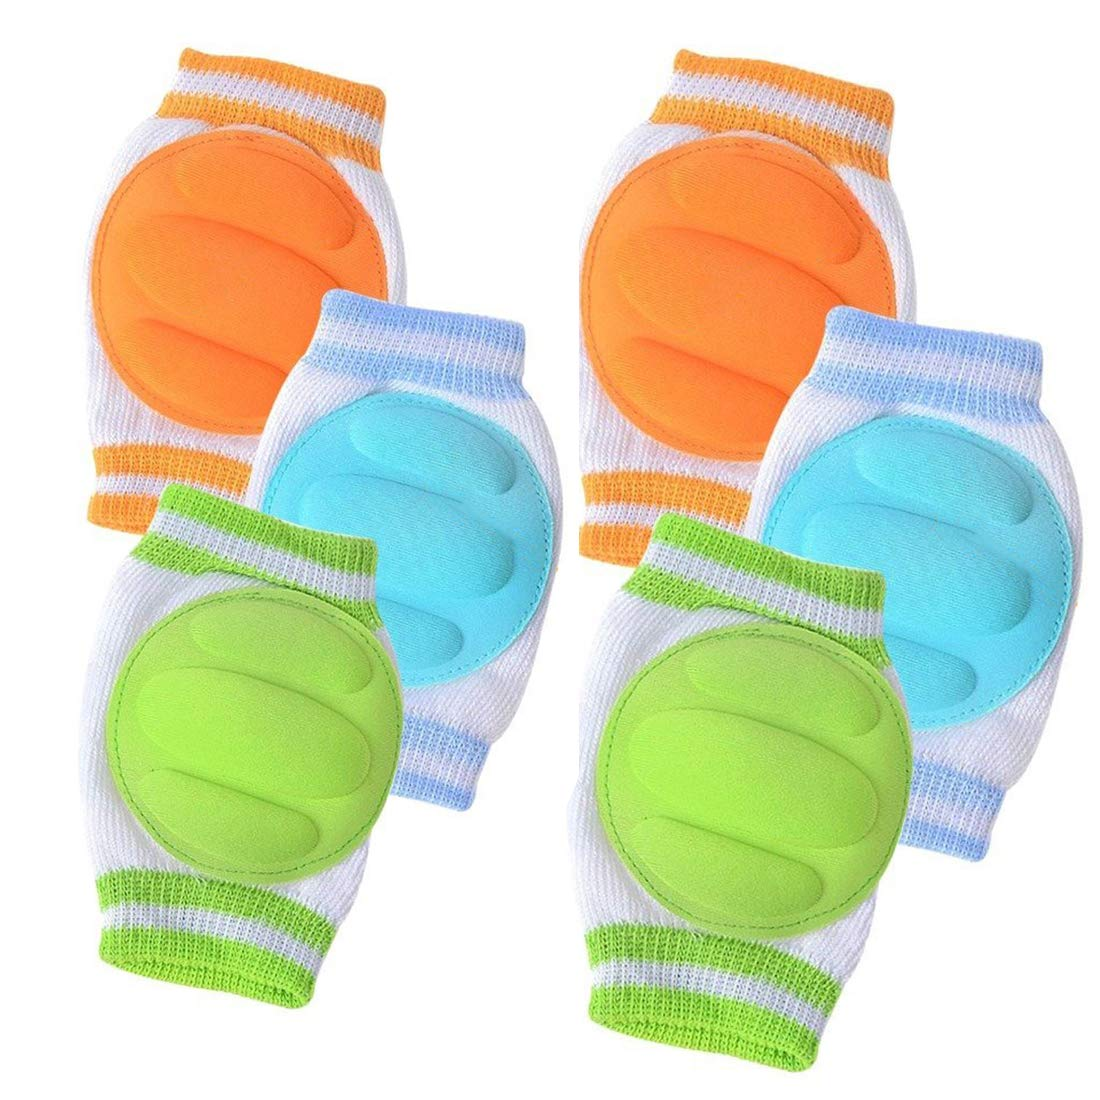 Naliovker 10 Pairs Baby Crawling Anti-Slip Knee Pads and Elbow Pads Unisex Baby Toddlers Leg Warmer Safety Protective Cover Infant Short Kneepads